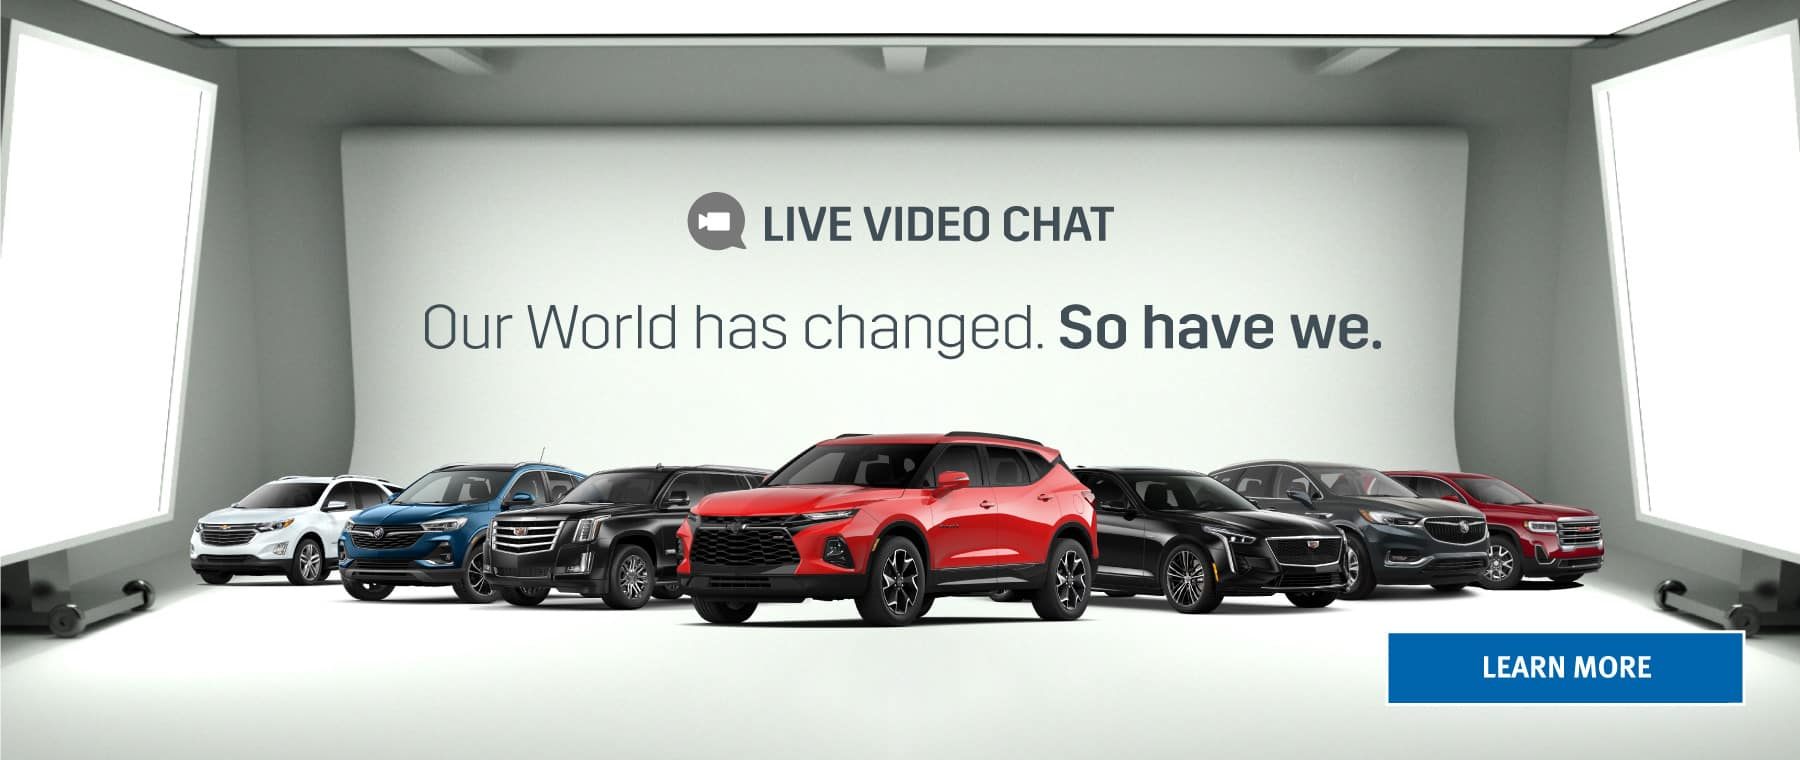 Live-Video-Chat-BannerV3